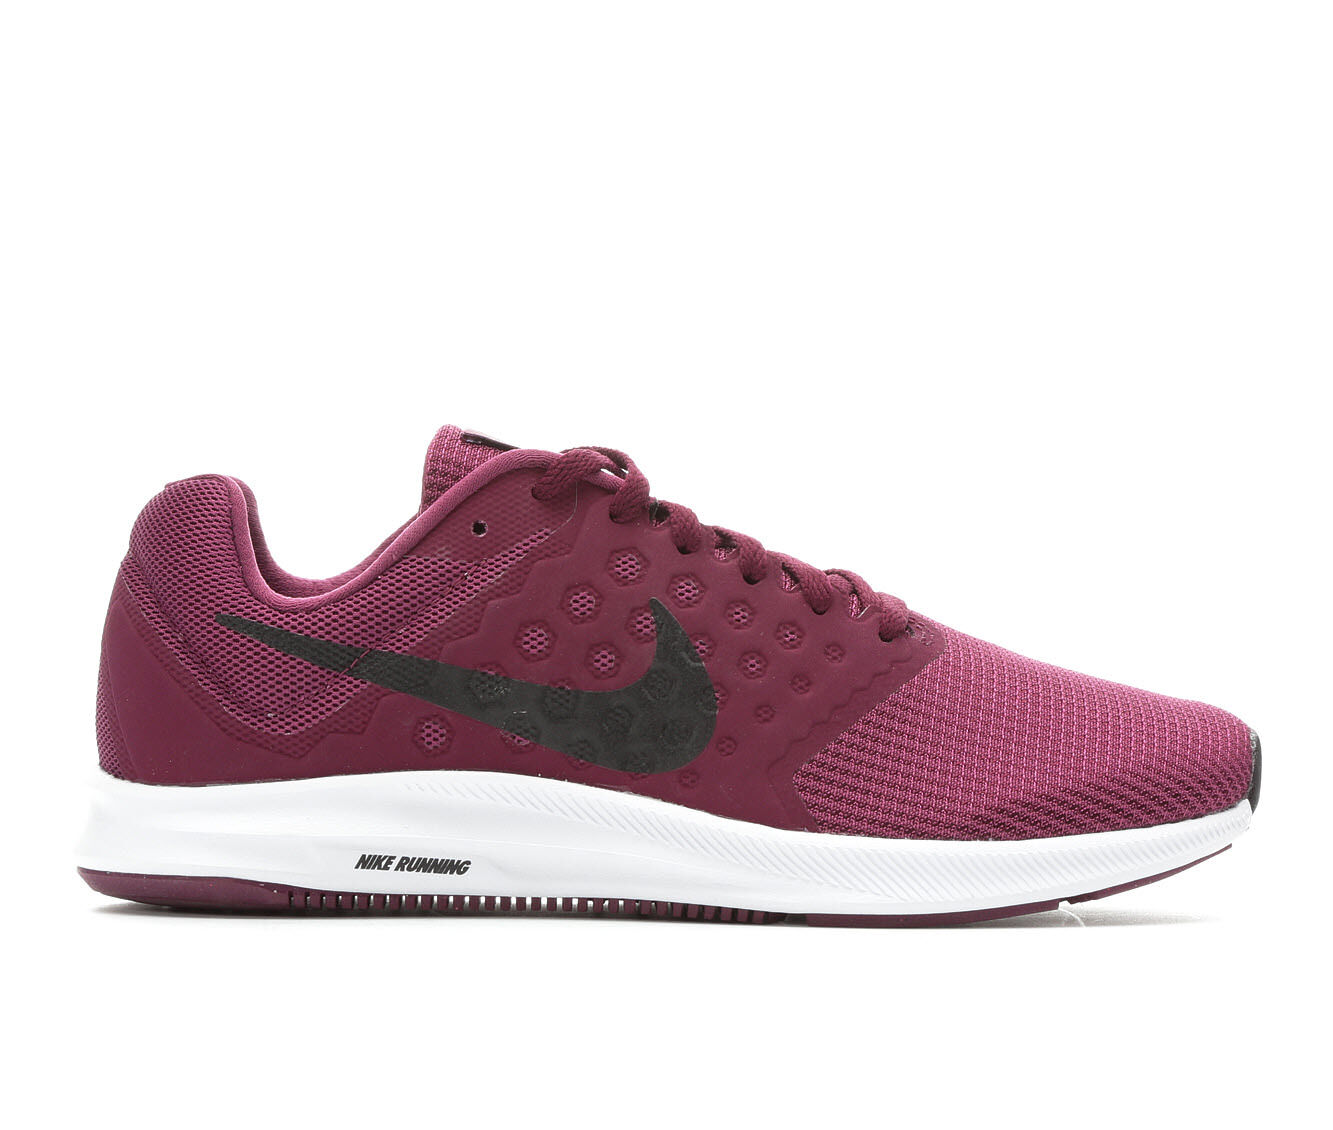 purchase cheapest Women's Nike Downshifter 7 Running Shoes Berry/Black/Wht